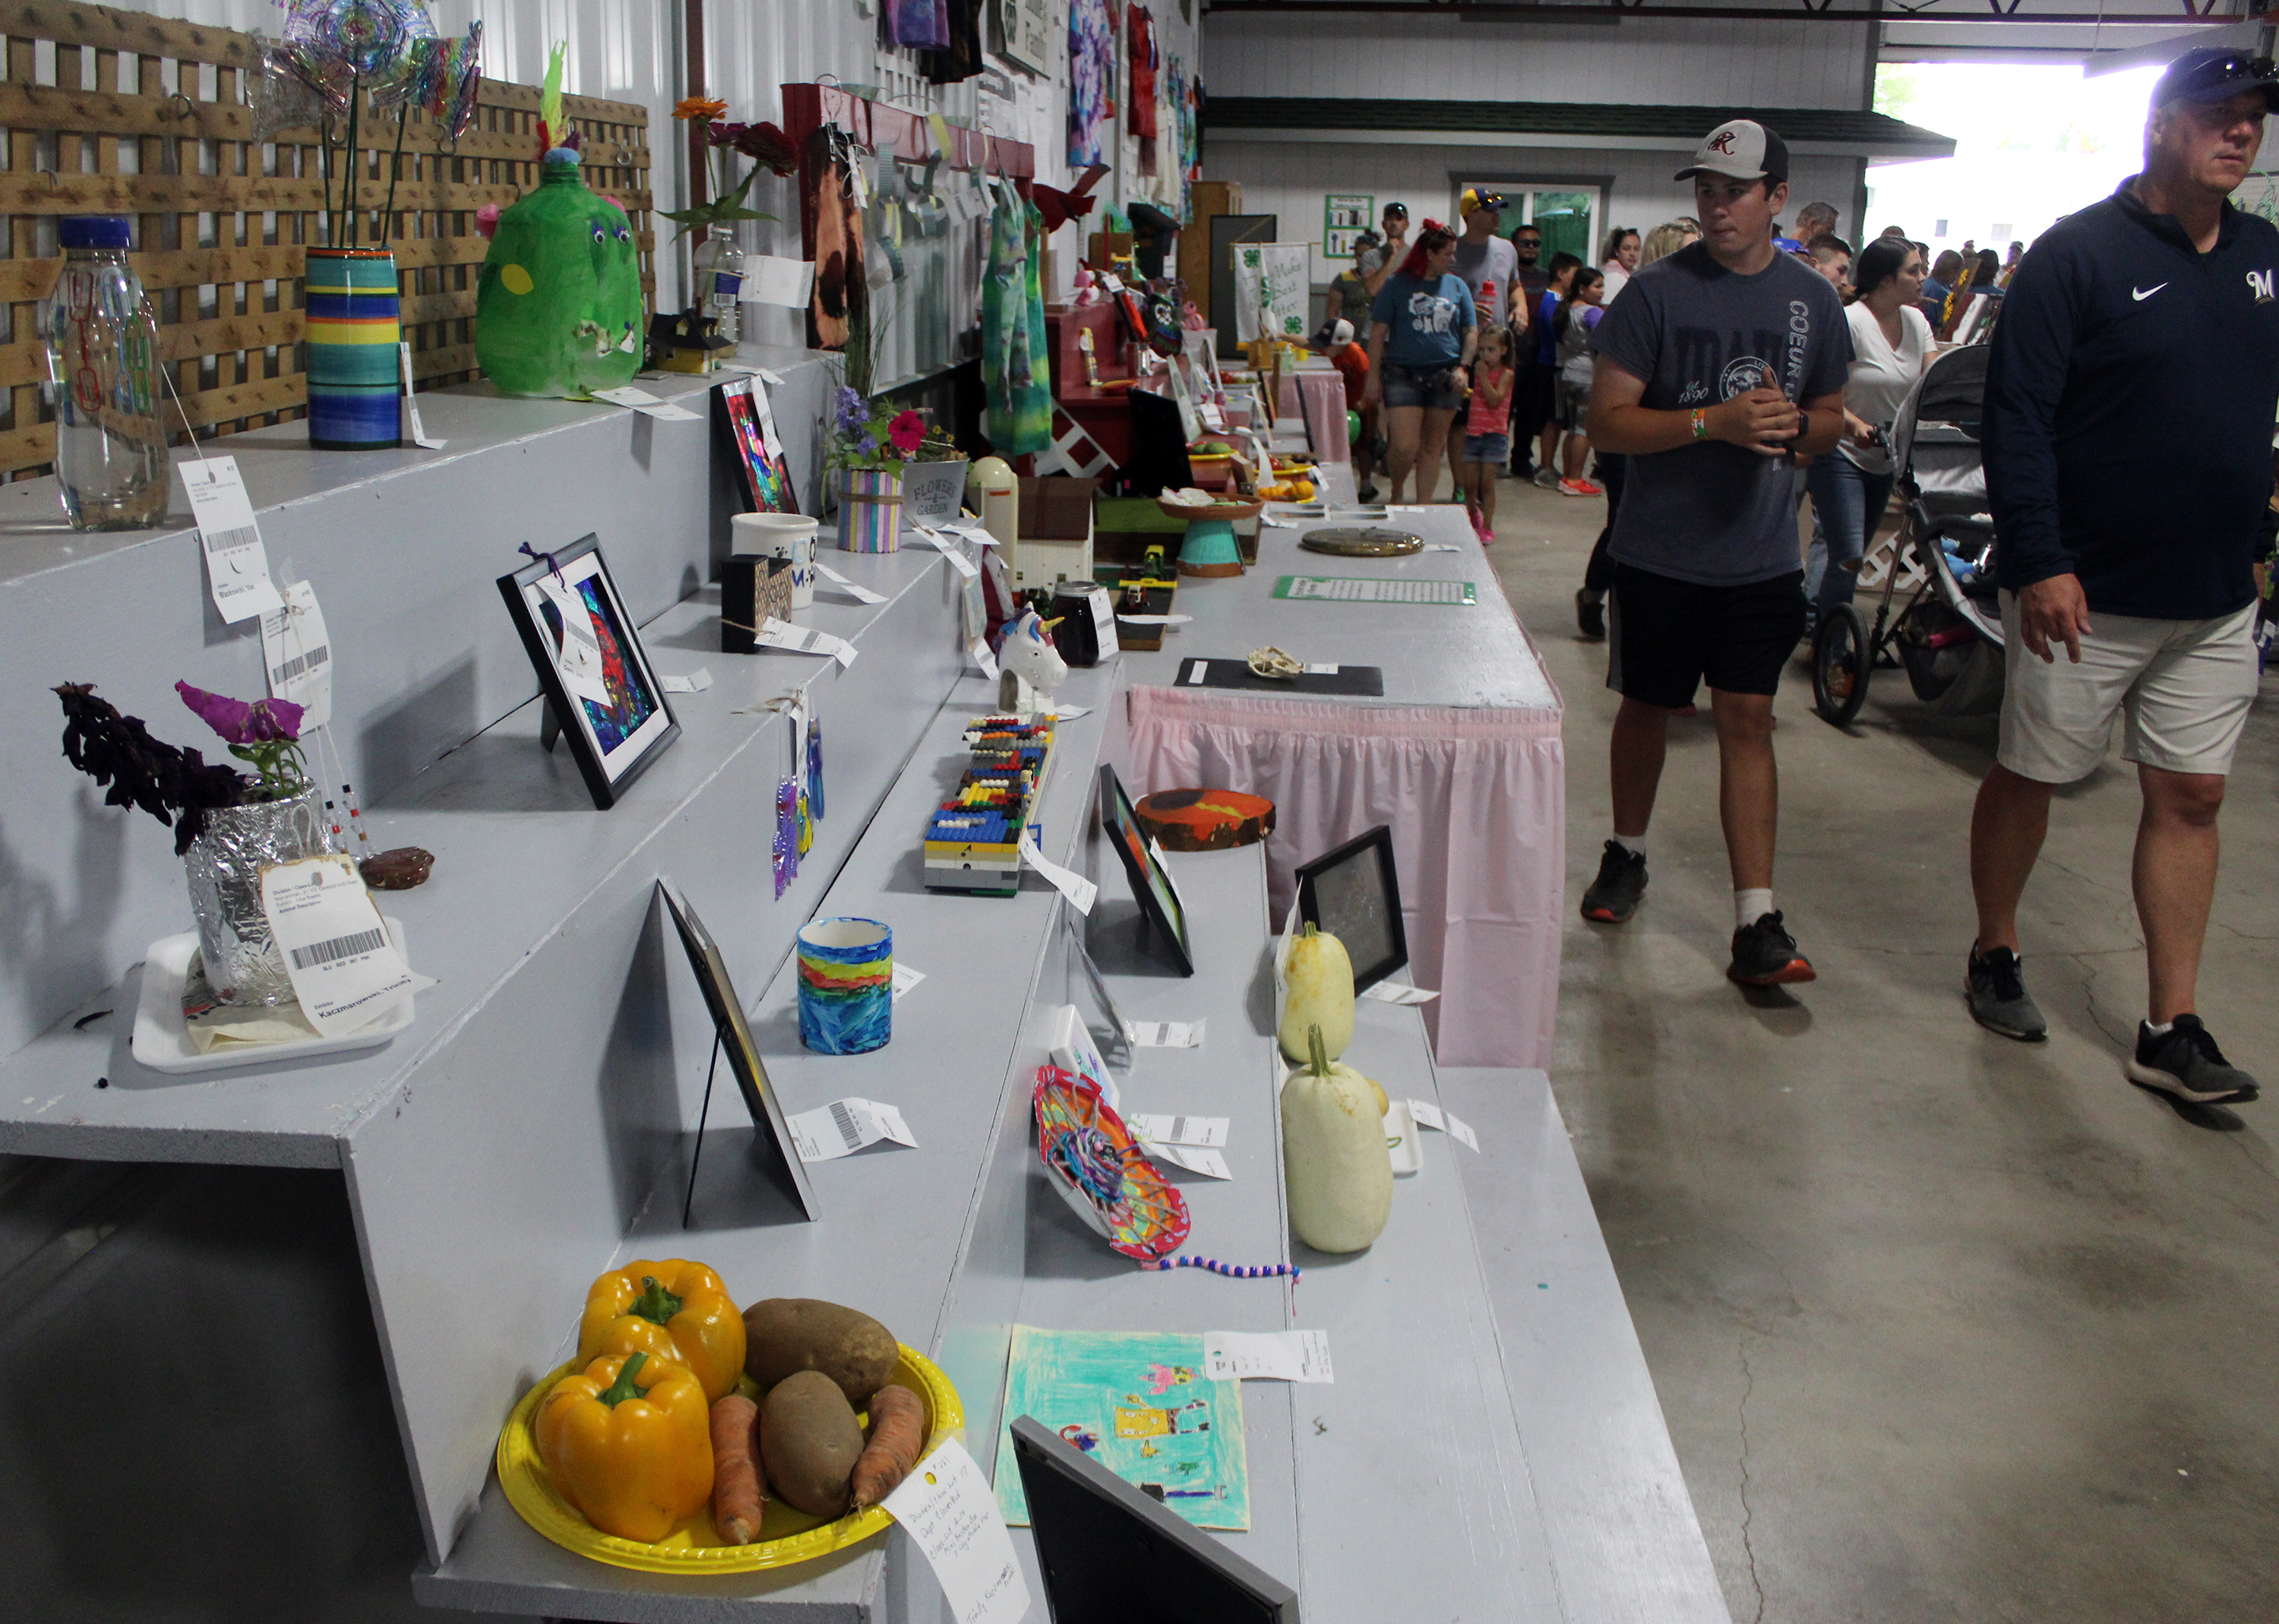 A variety of exhibits make by 4-H Cloverbuds attract the attention of people passing by during the Shawano County Fair.<br />(Lee Pulaski   NEW Media)